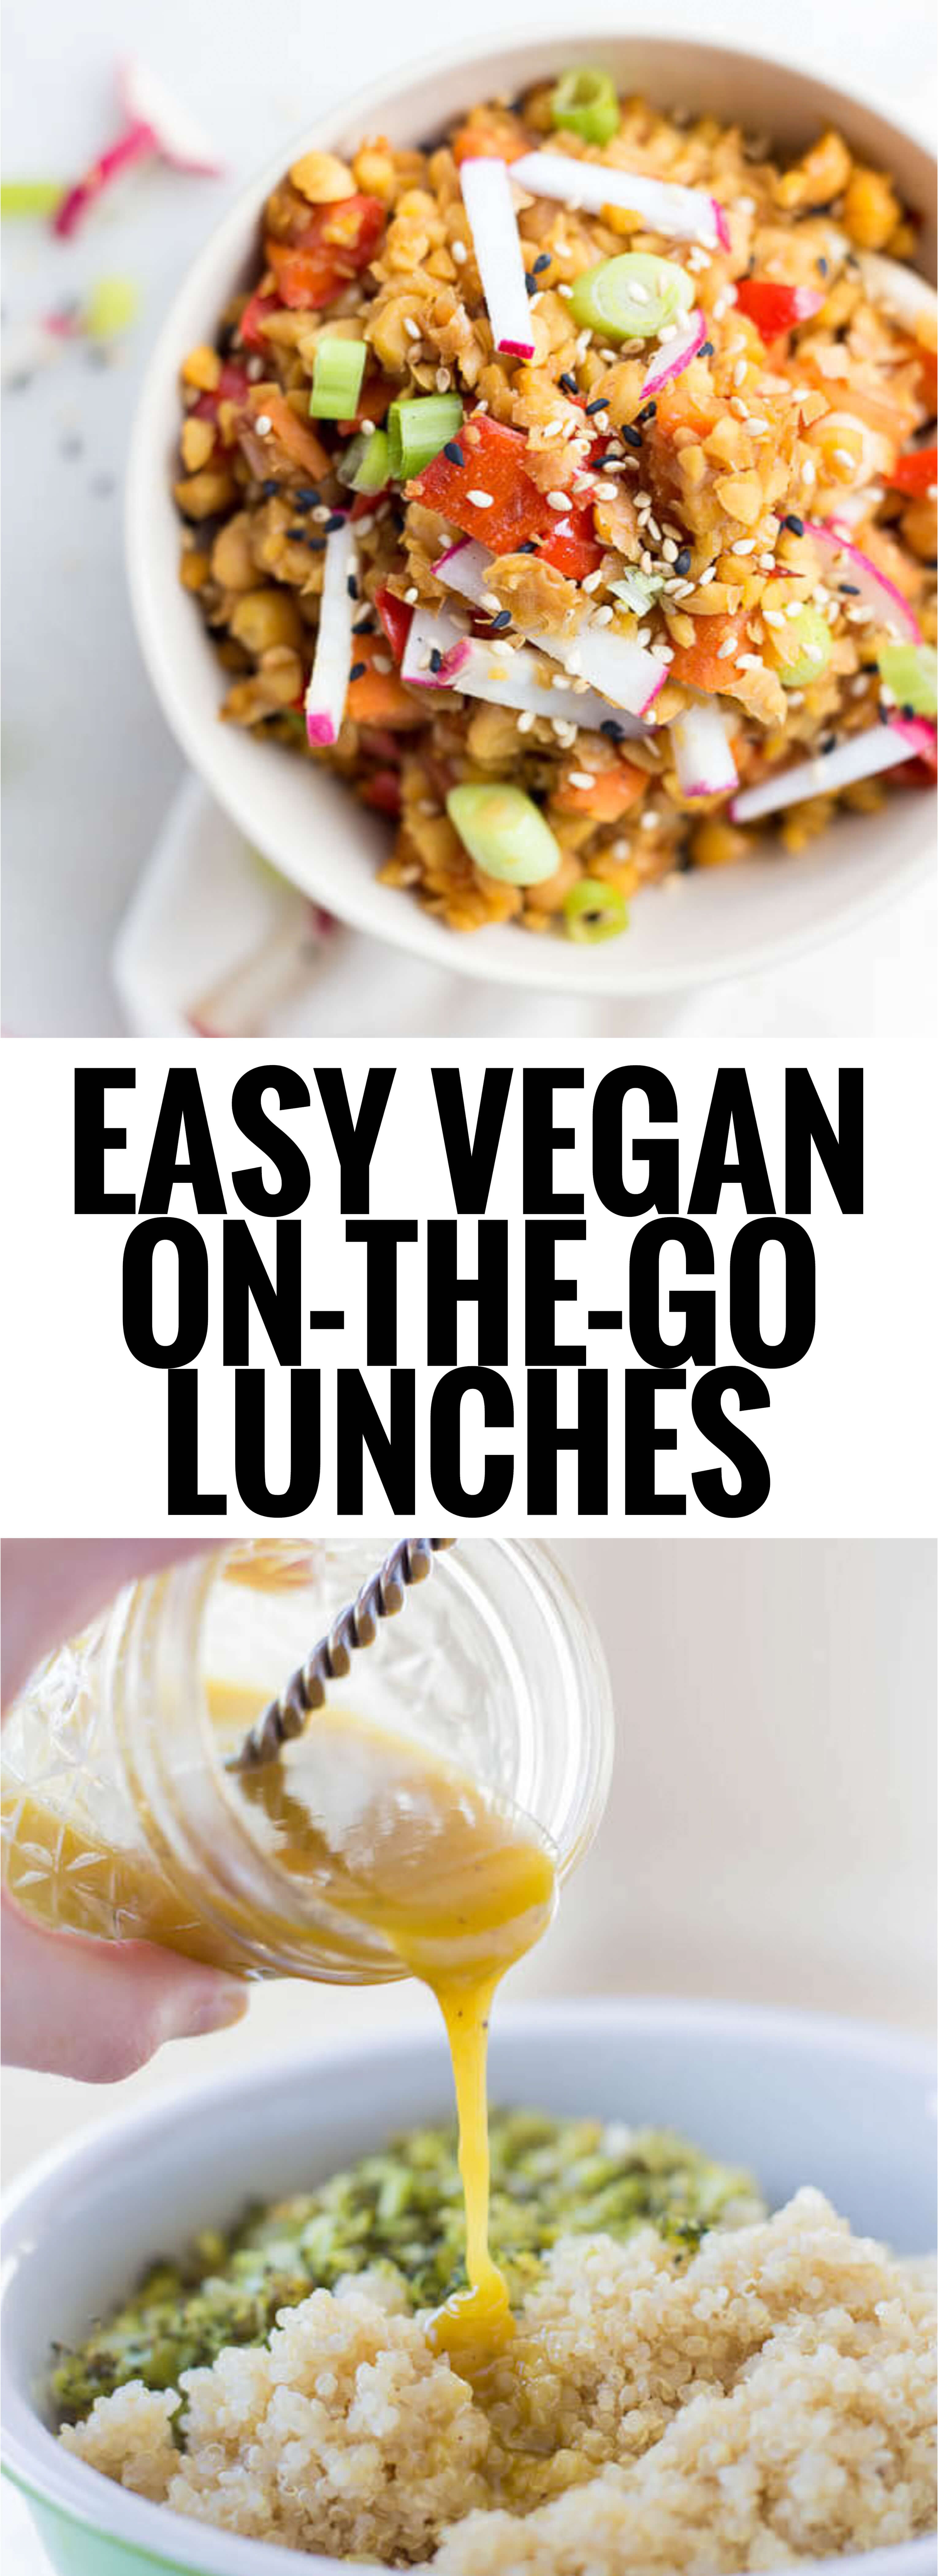 Quick and Easy Vegetarian Recipes Meatless meals are as tasty and filling as their meaty counterparts. With vegetarian lasagna, chili, and more, Allrecipes makes going veggie easy and delicious.